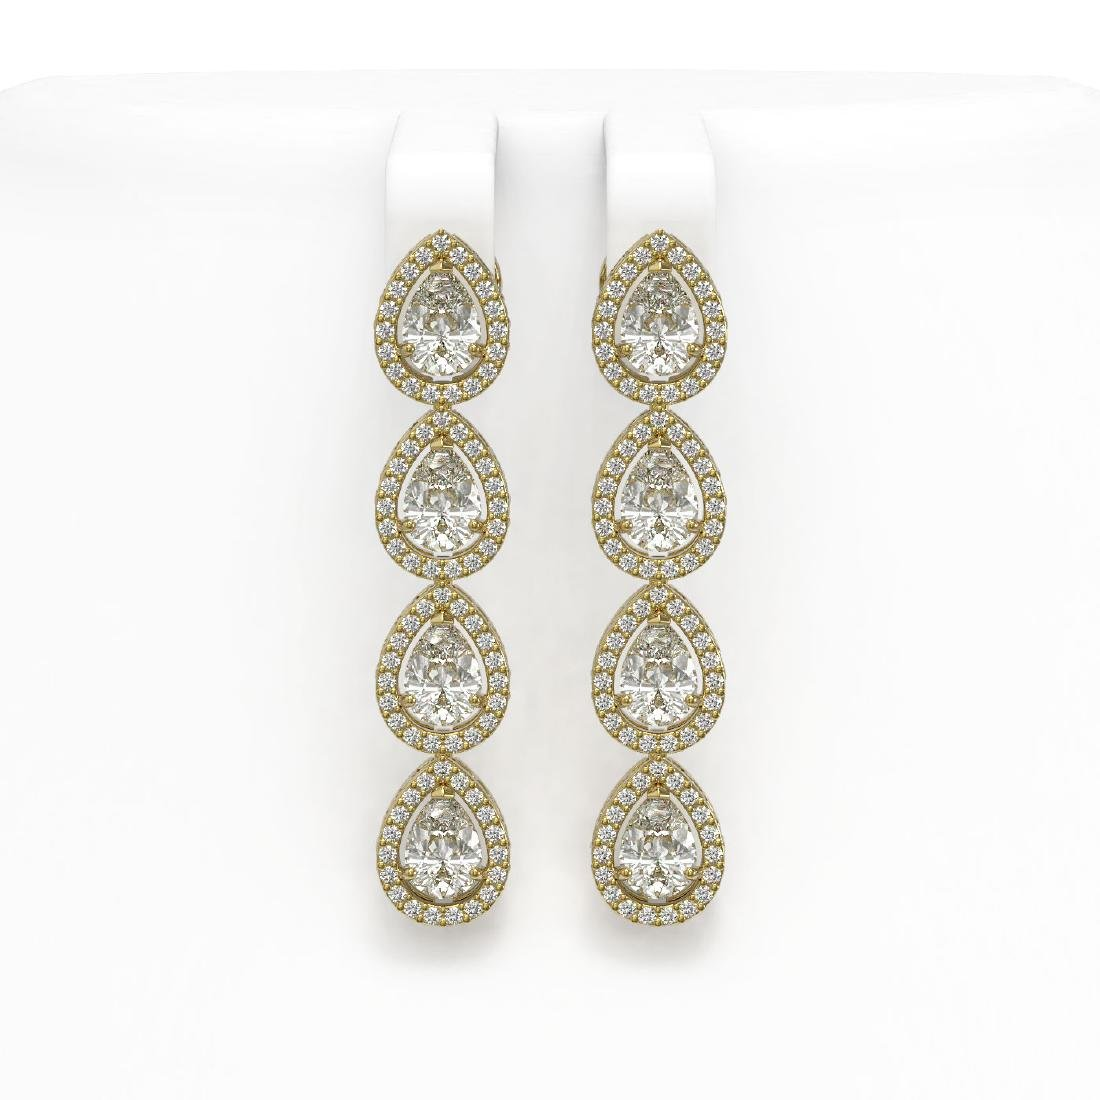 6.01 CTW Pear Diamond Designer Earrings 18K Yellow Gold